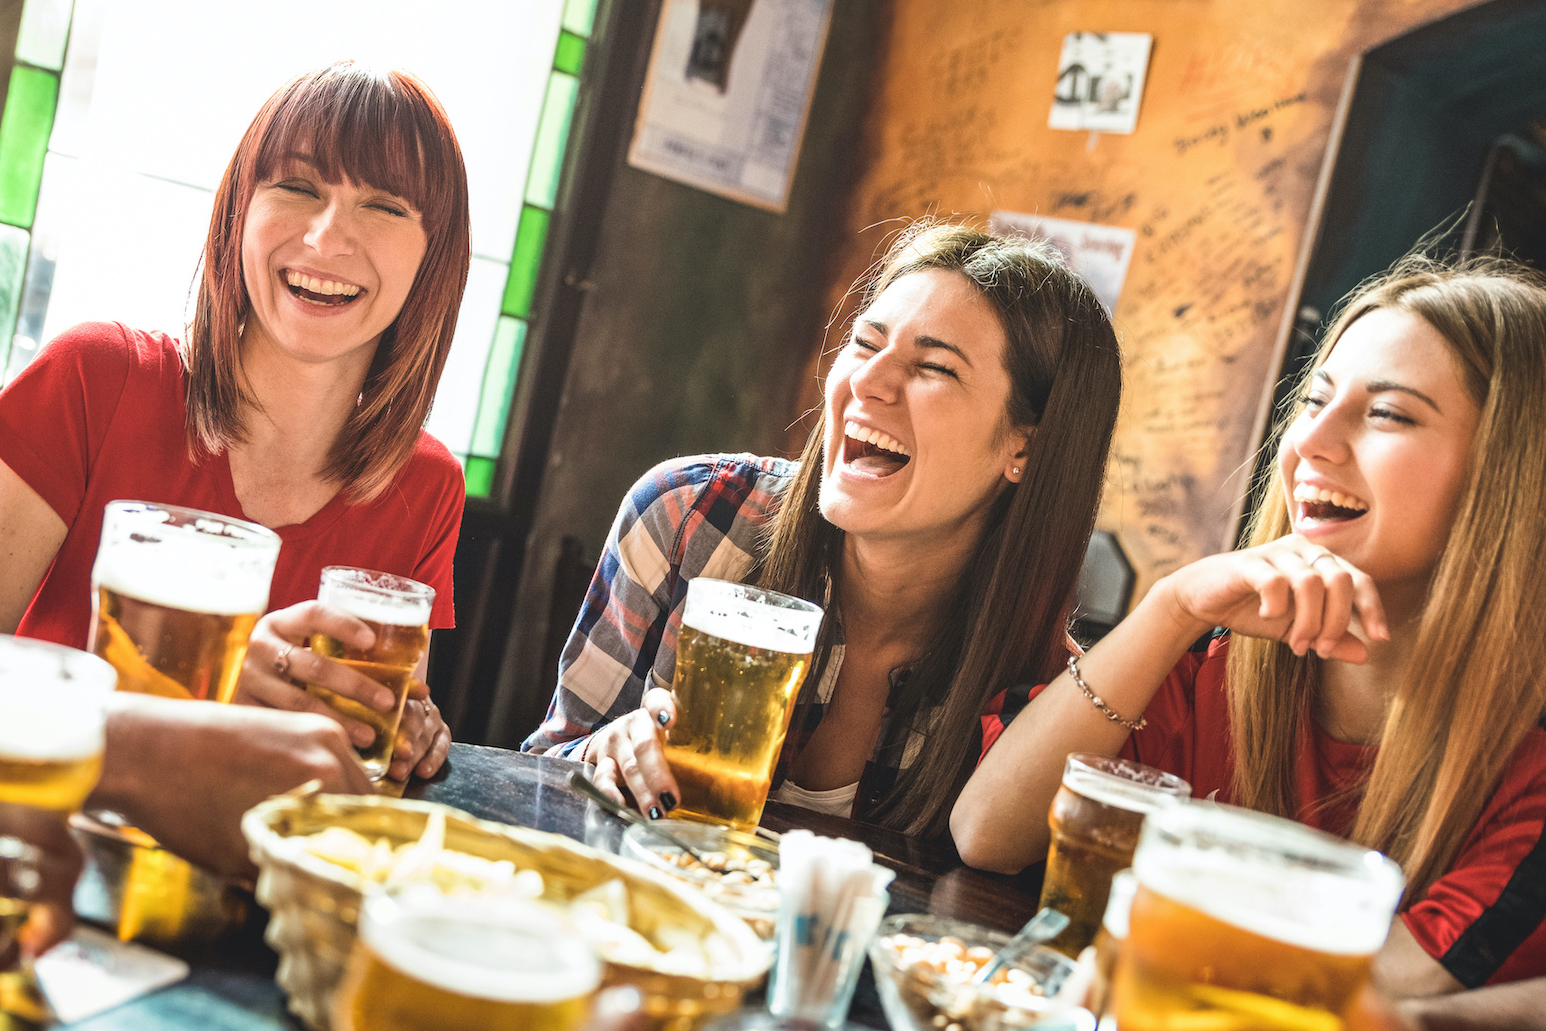 Young women laughing and drinking beer